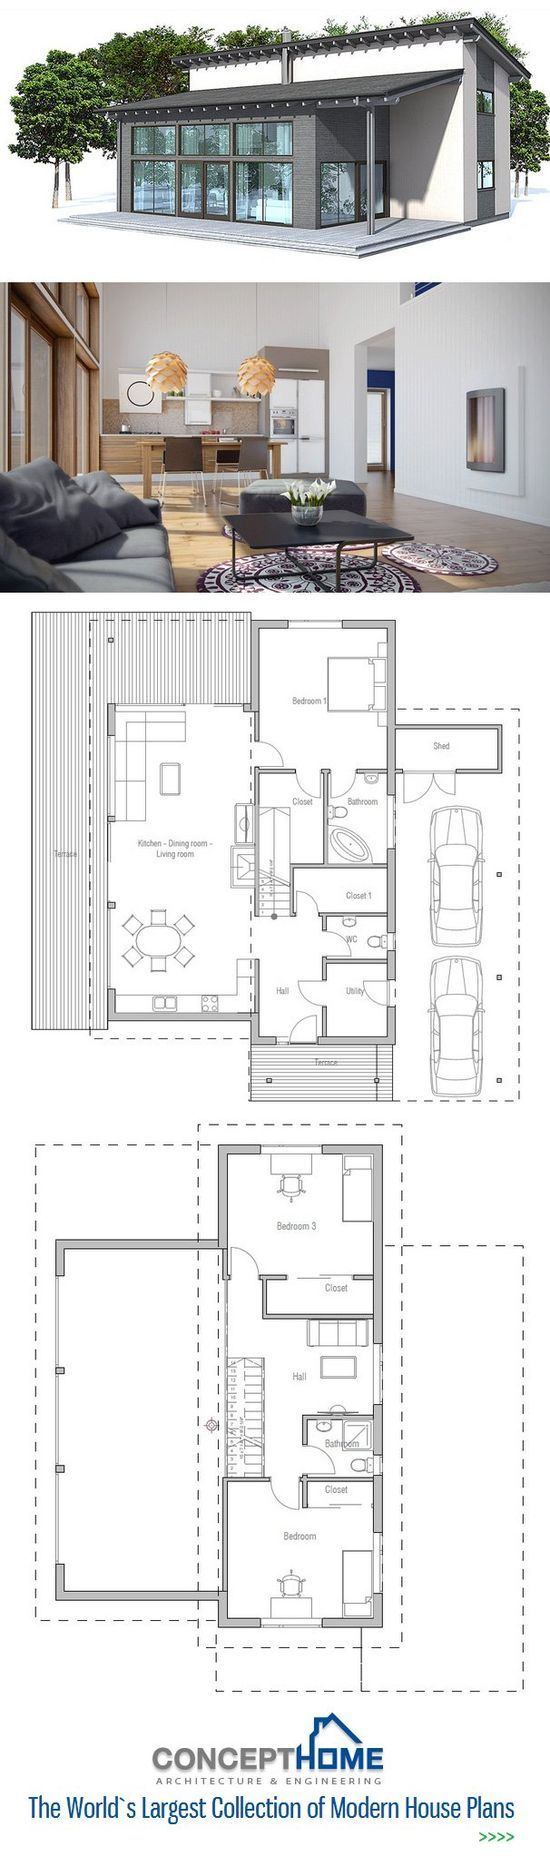 Small House Plan Floor Plan from home